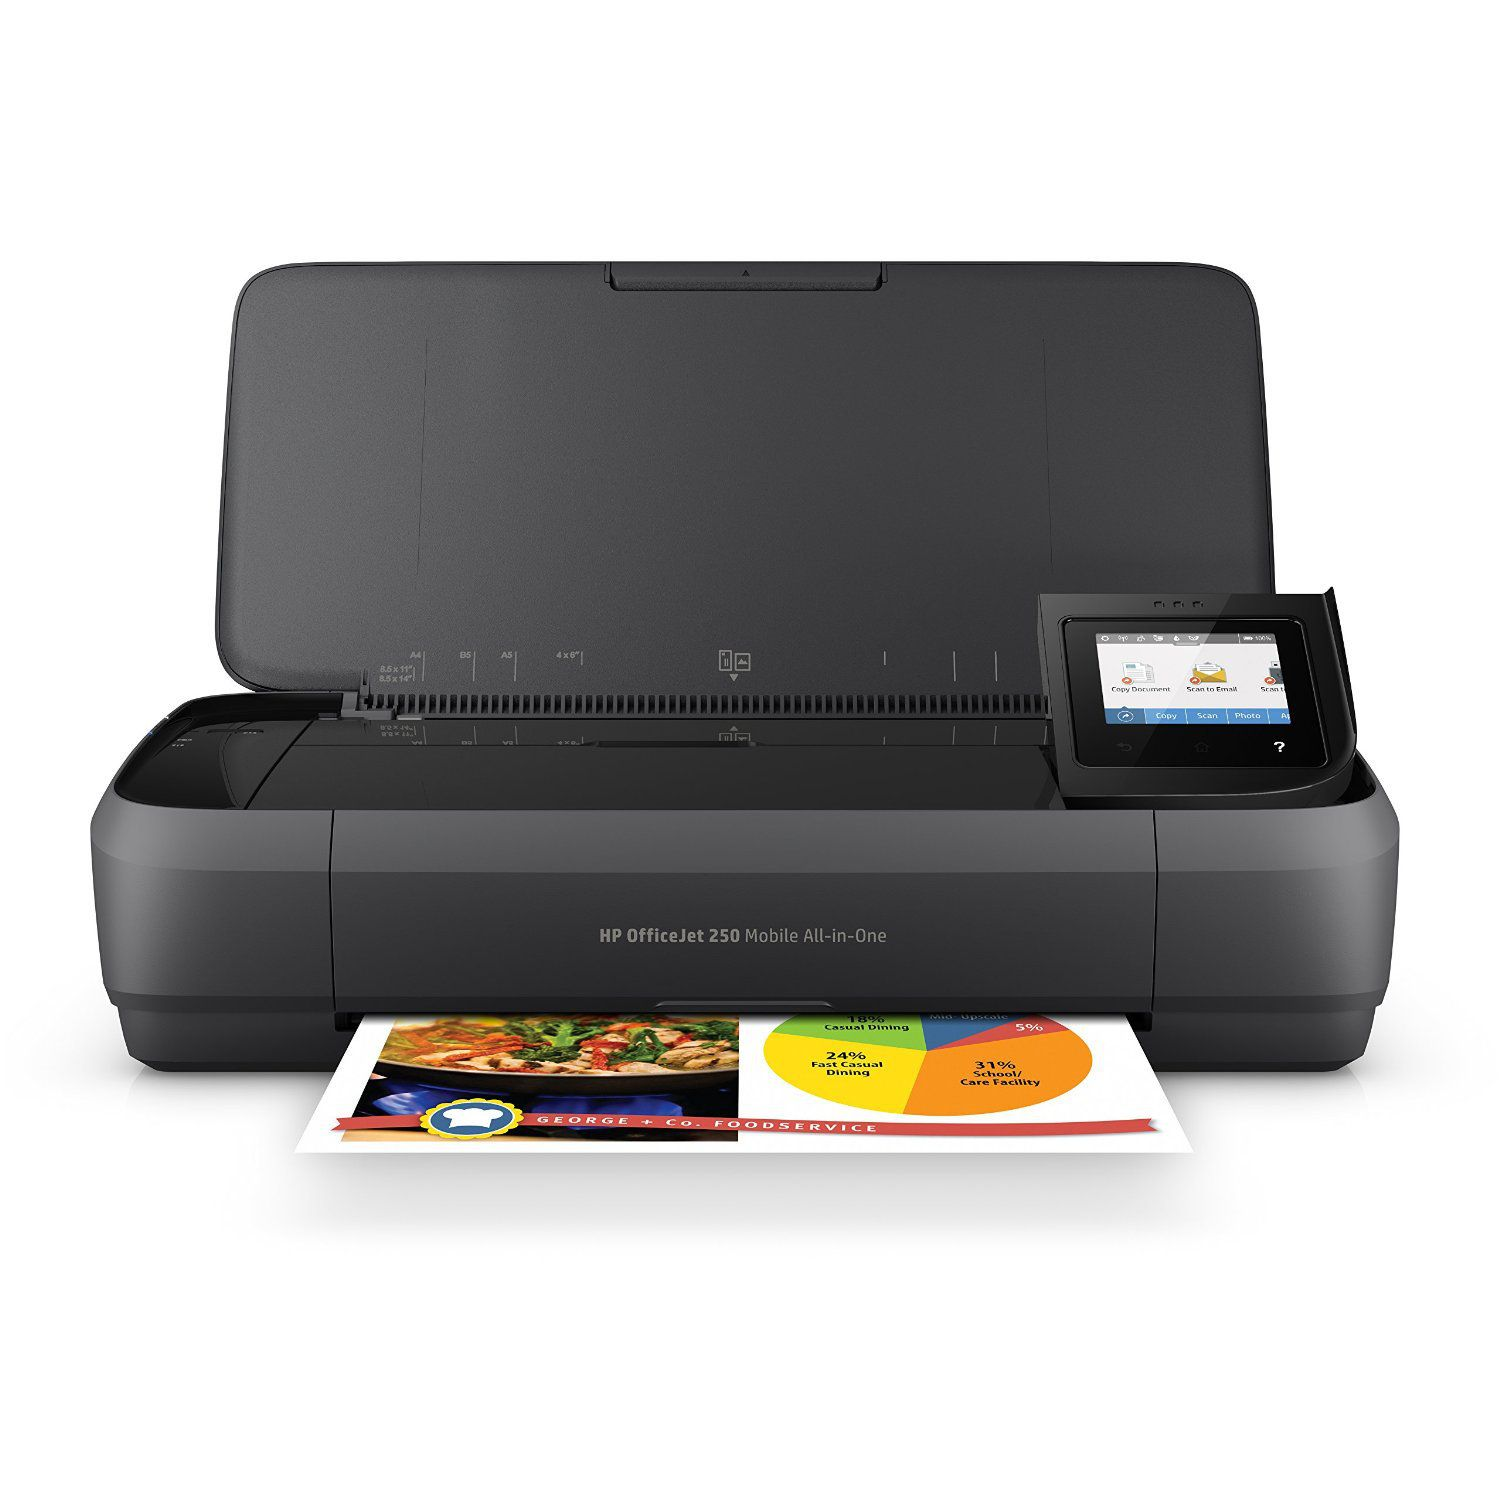 HP OfficeJet 250 printer